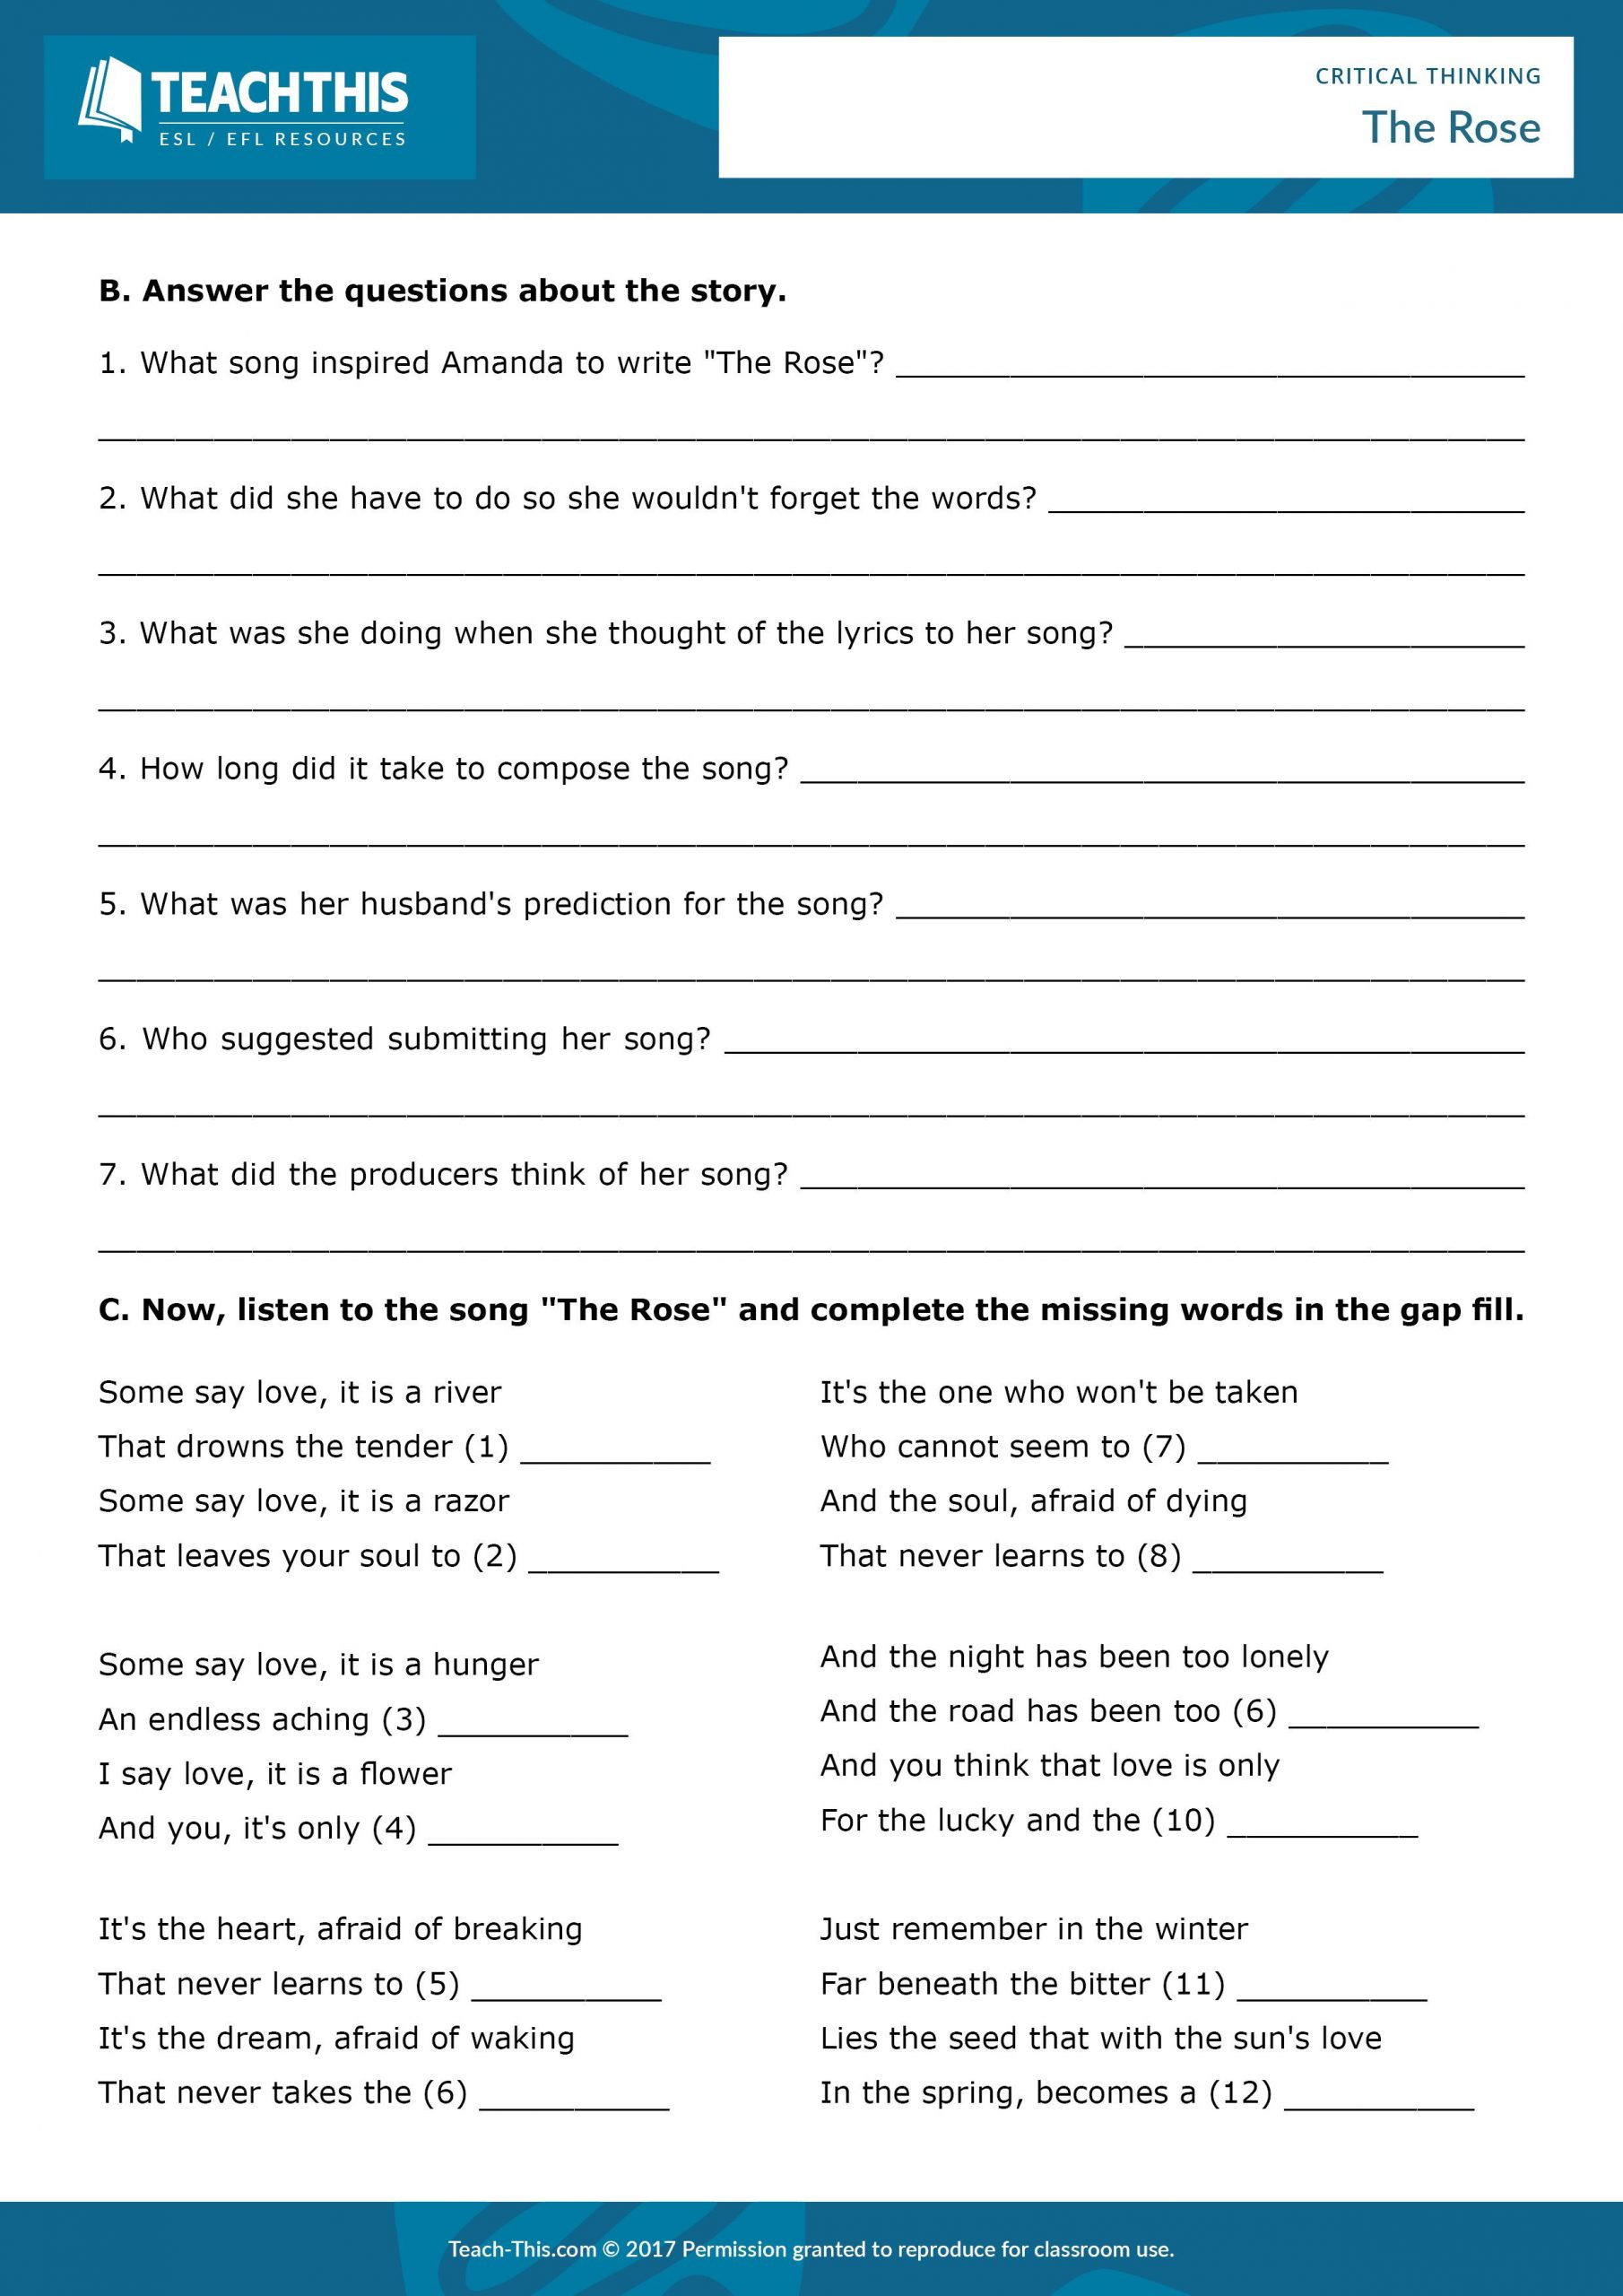 Problem solving Skills Worksheets Critical Thinking and Problem solving